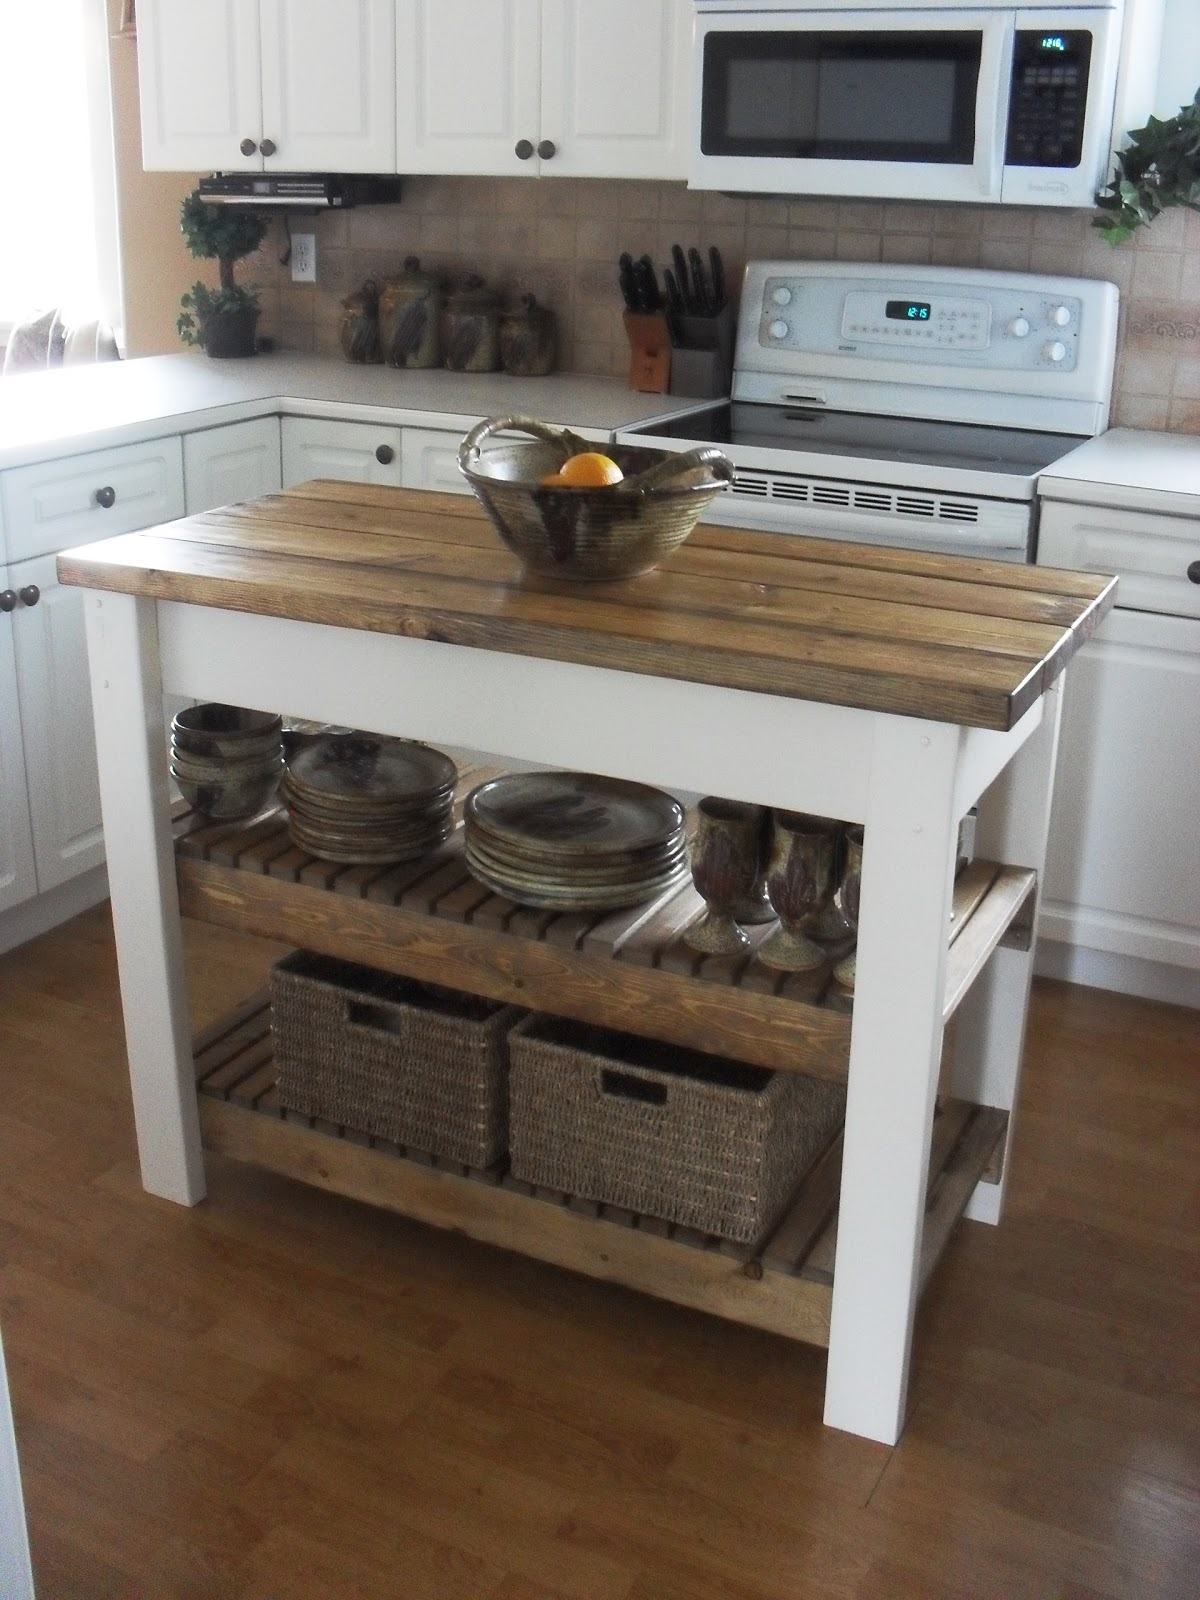 10 Photos To Small Kitchen Island Perfect Way Extend Working Surface